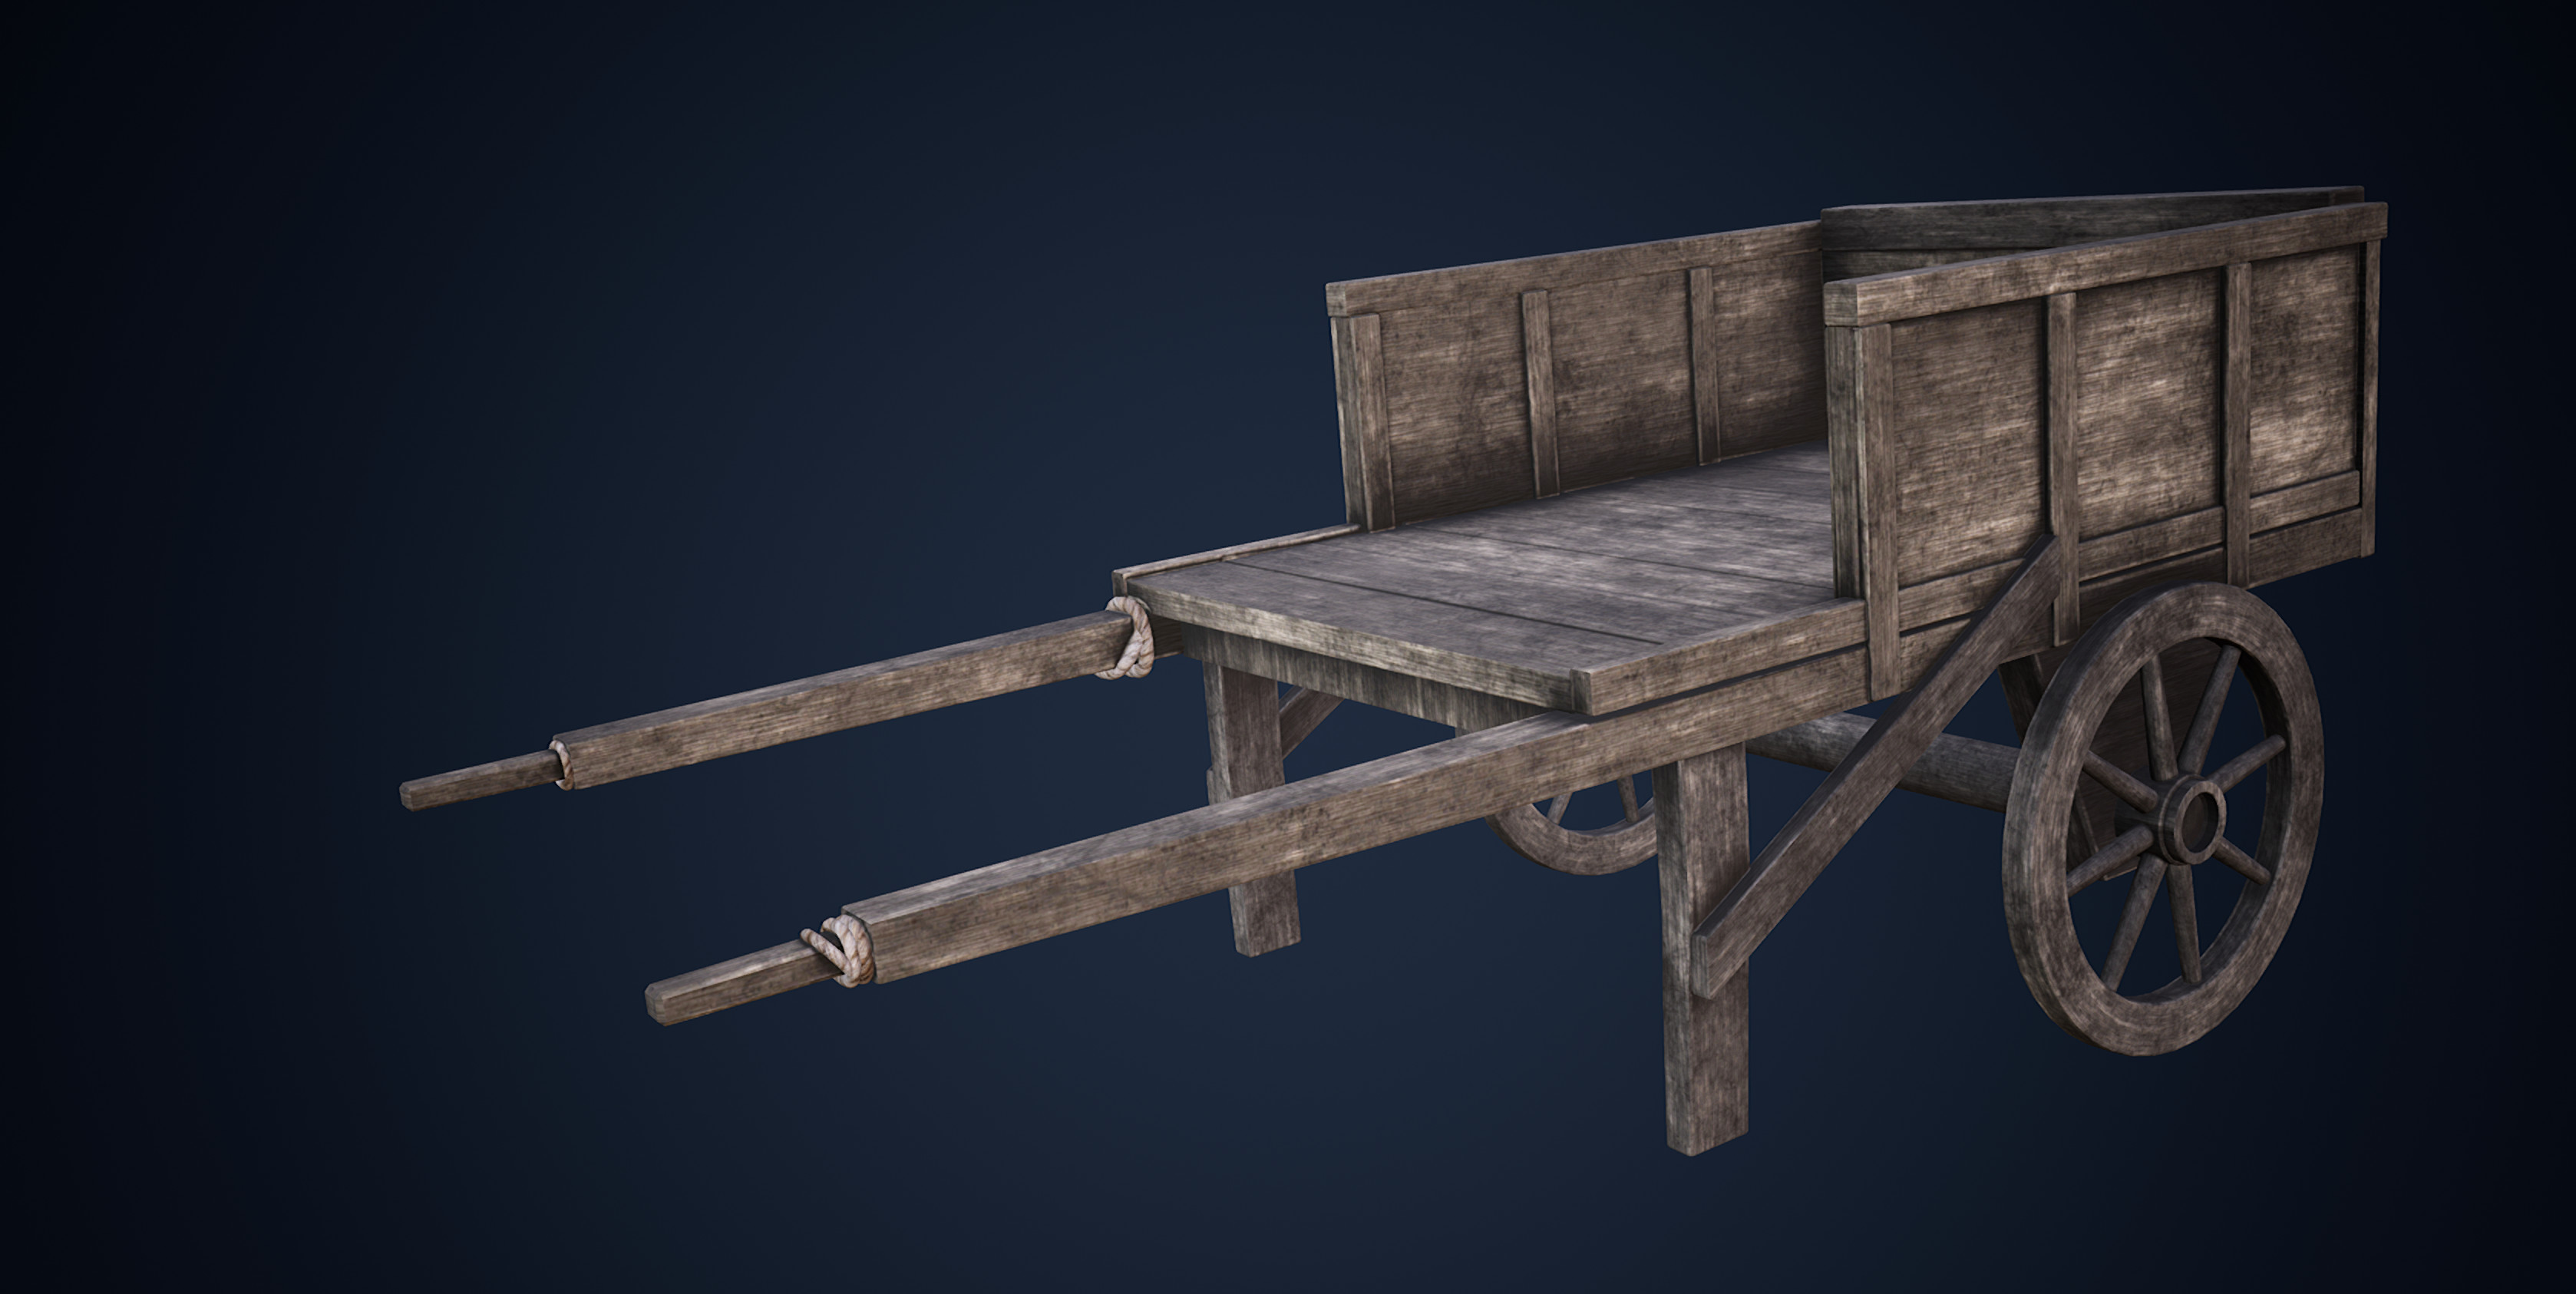 A Wagon (Painted with Substance)